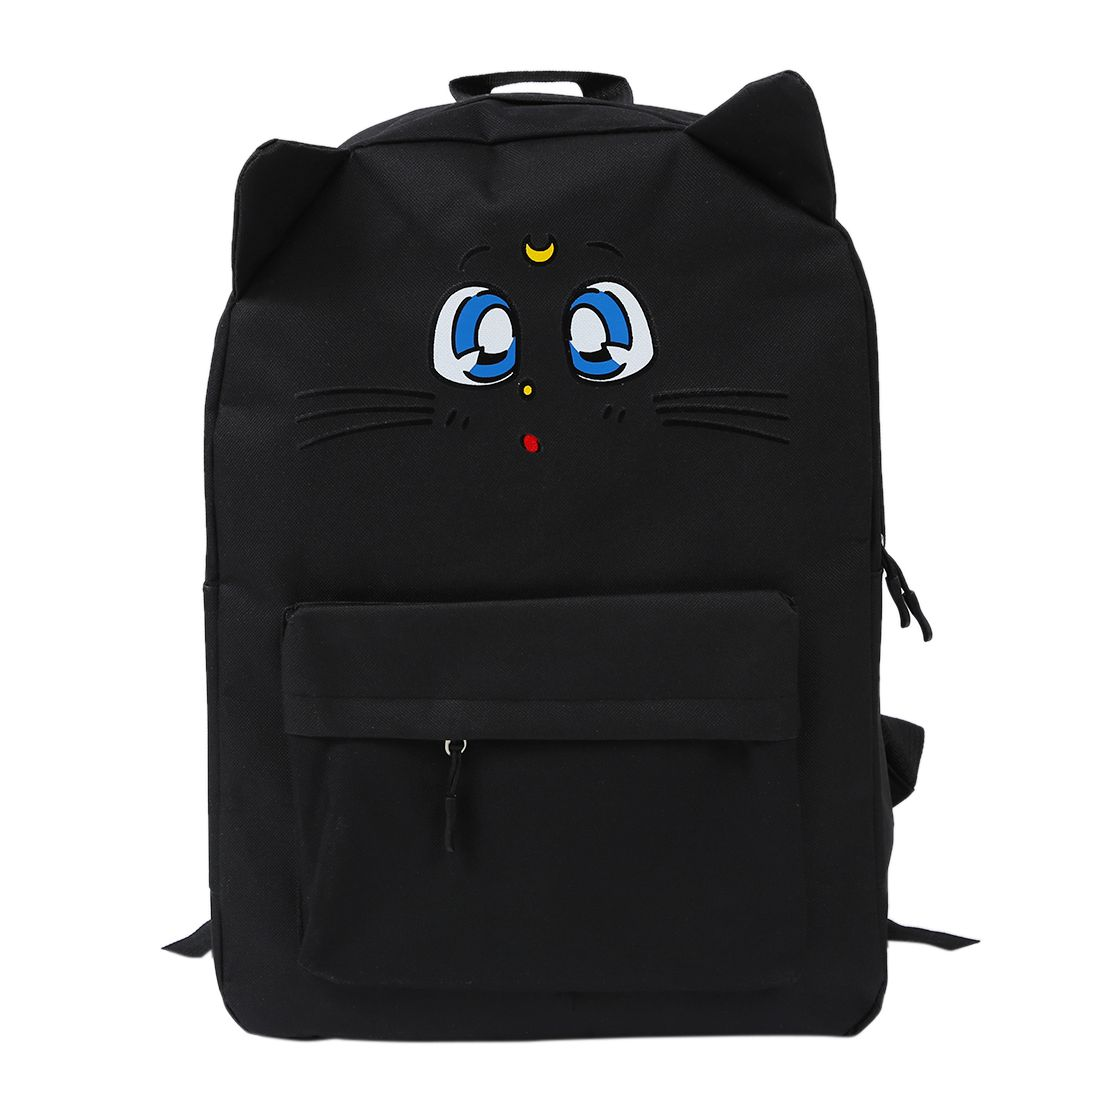 Hot Fashion Orecchiette Backpack Cartoon Nuna Cat Printing Canvas Backpack School Bag Sweet Girl Travel Bag